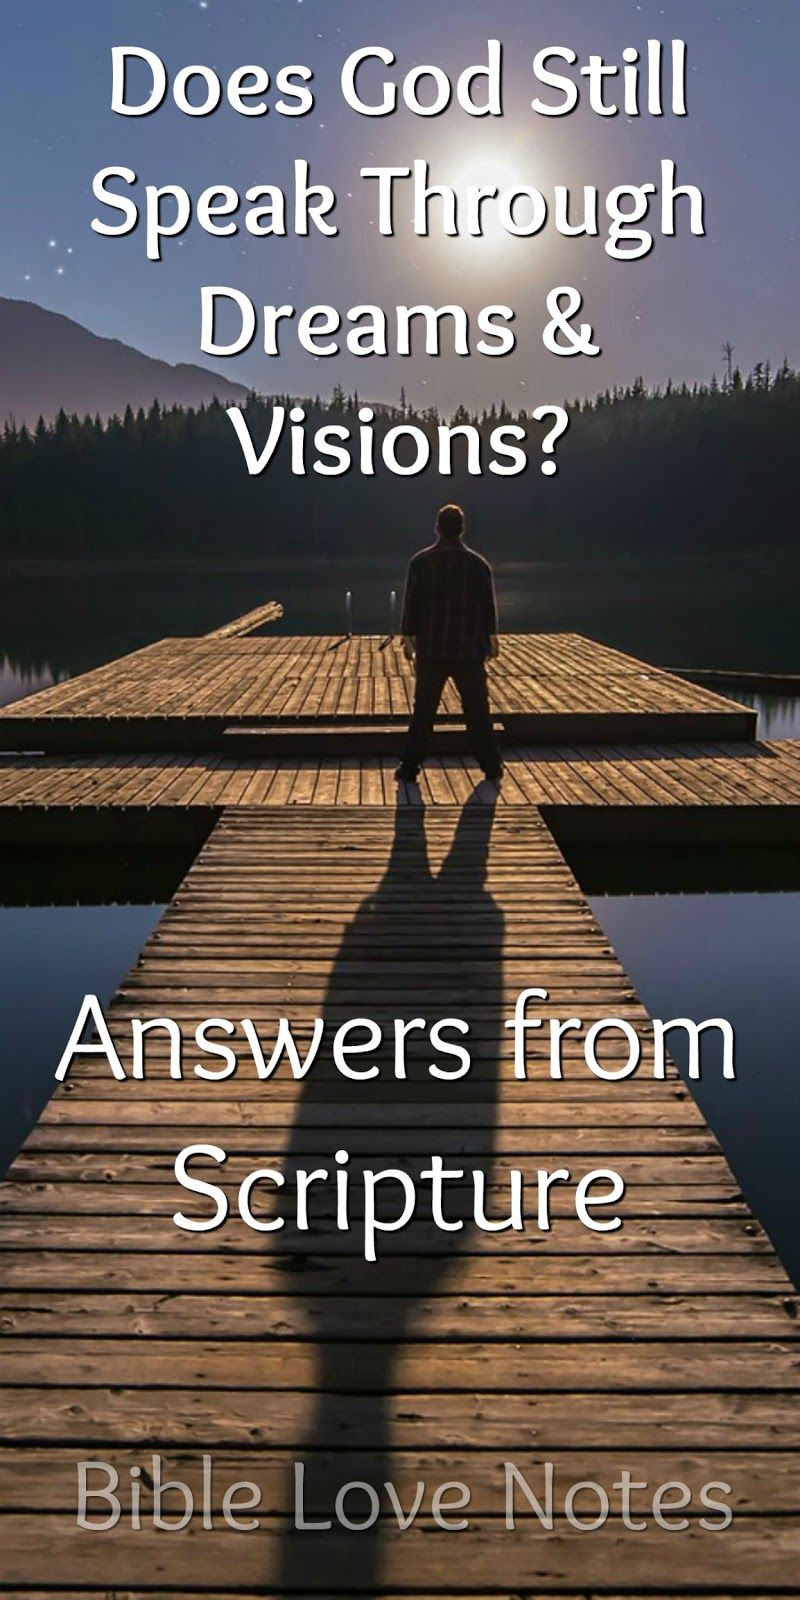 Does God Still Speak in Dreams and Visions? Hearing gods